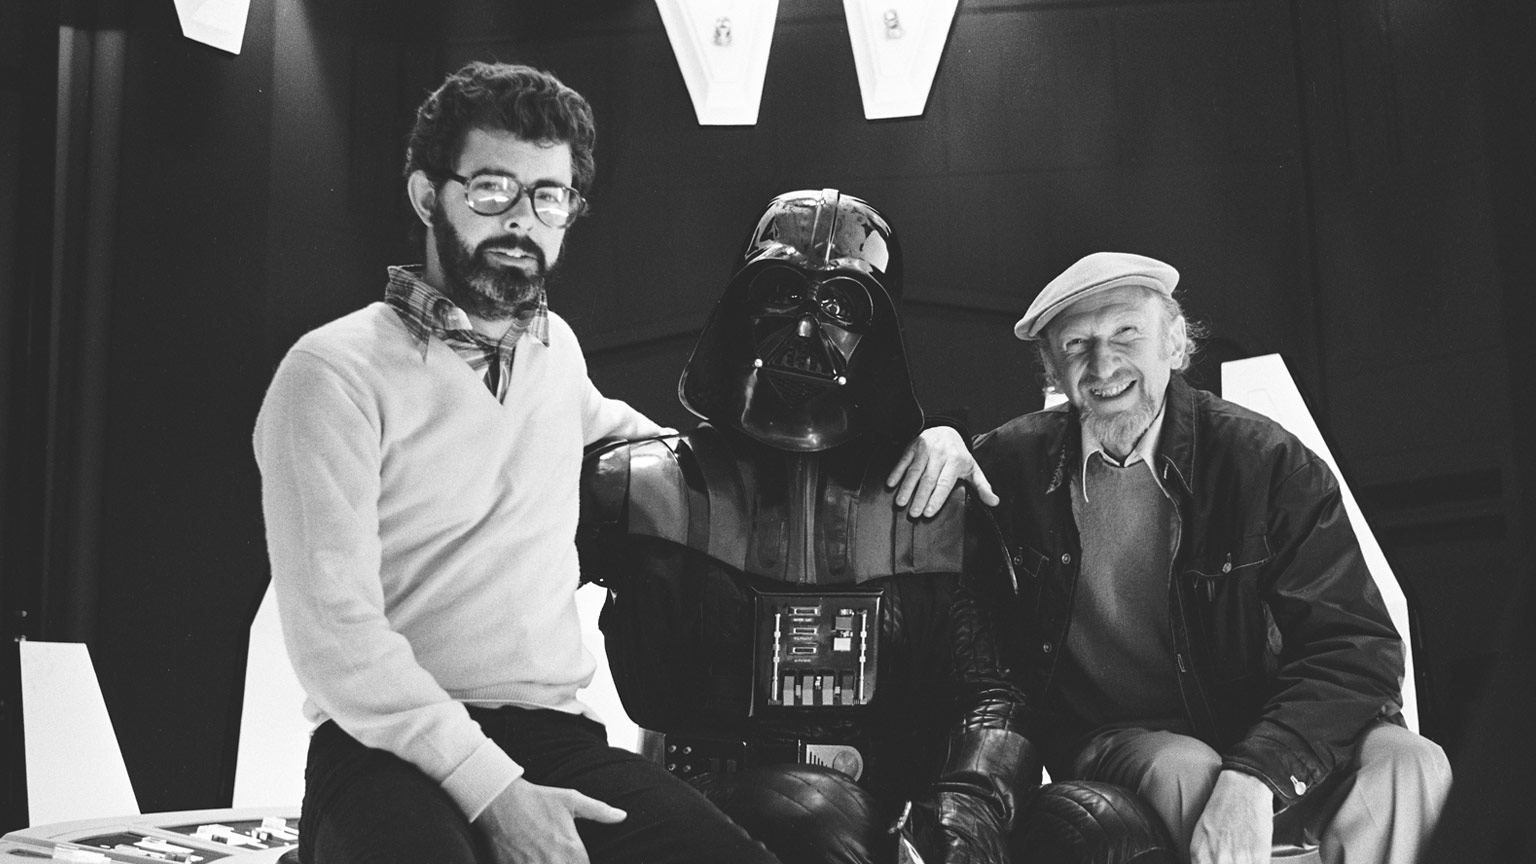 George Lucas and Darth Vader on the set of The Empire Strikes Back